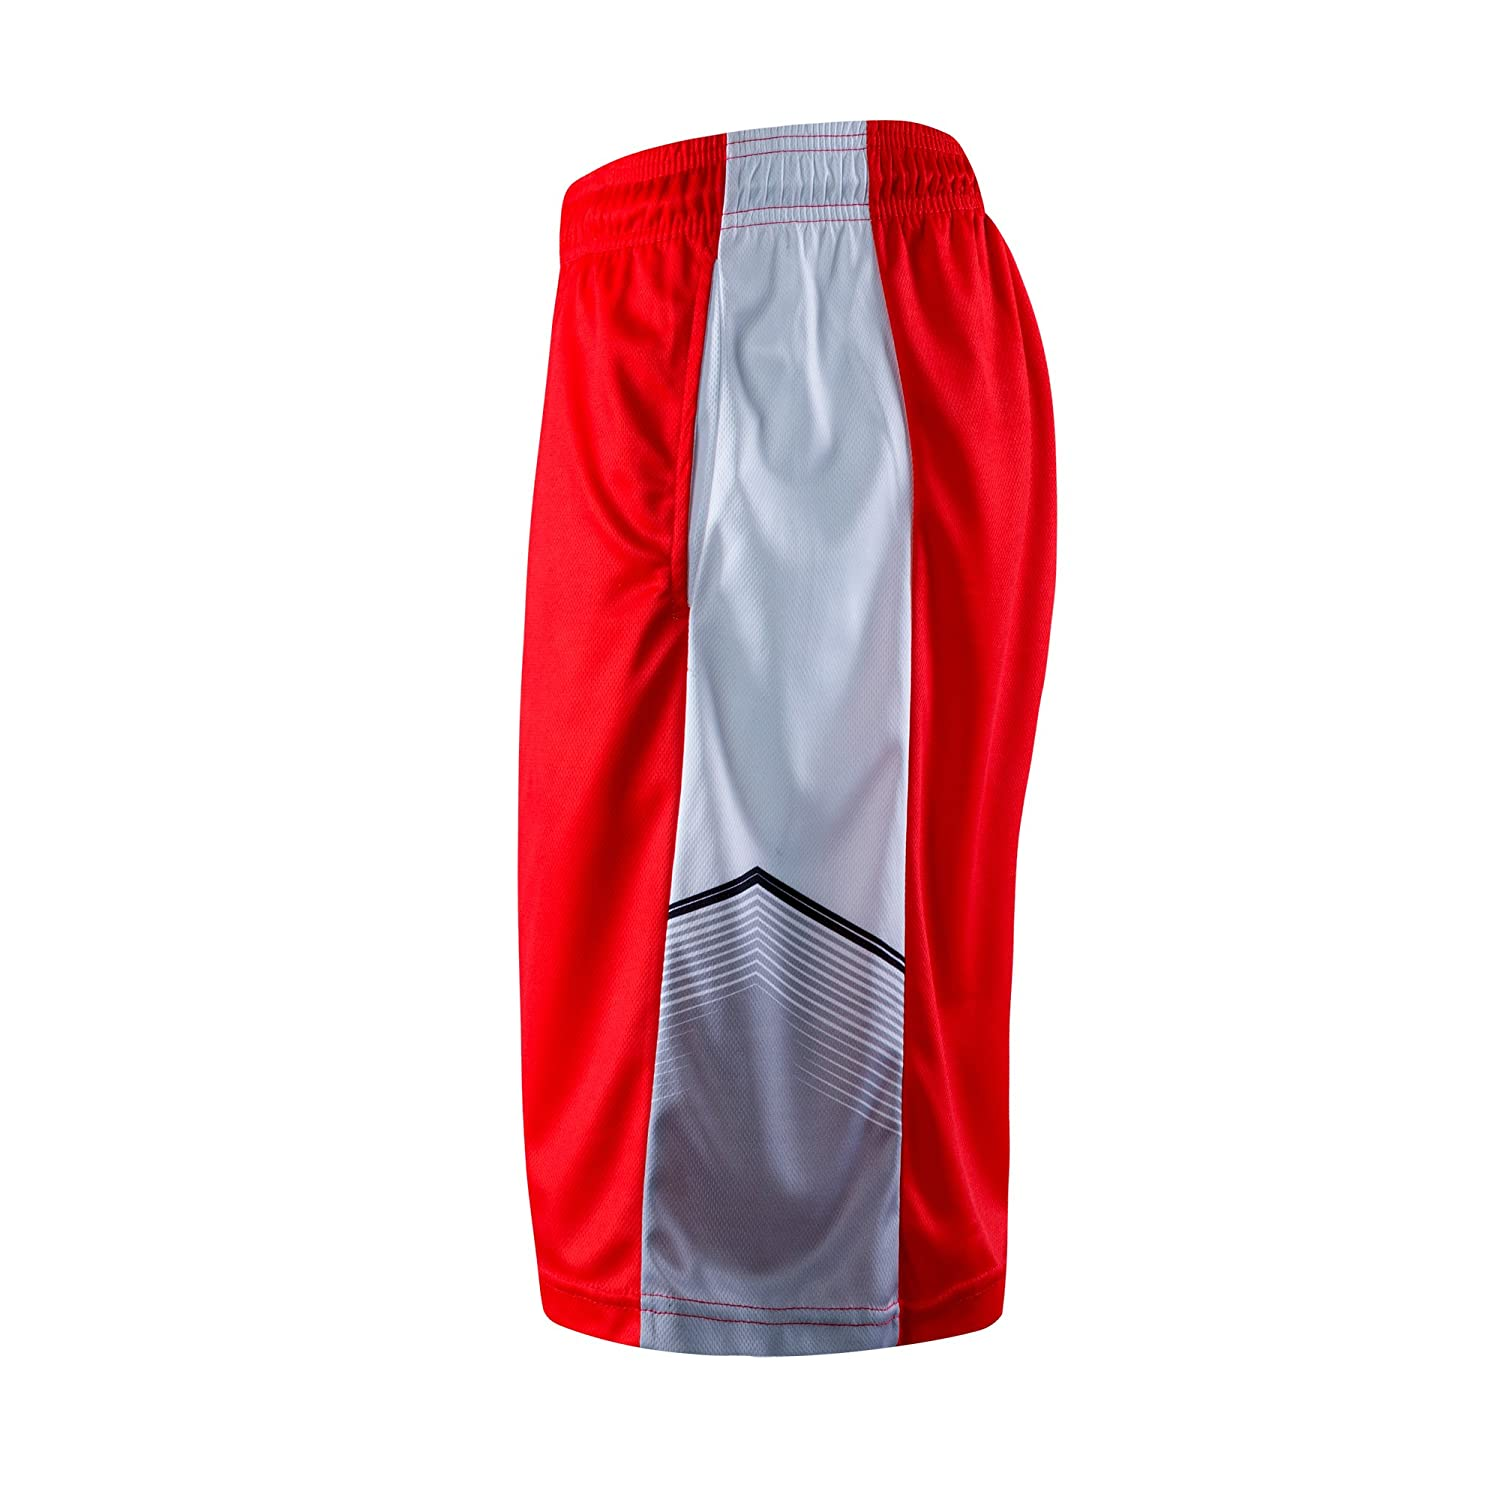 XL, Red Men and Yonth Boy Fitness Compression Pants Running Tights Length Pants Leggings